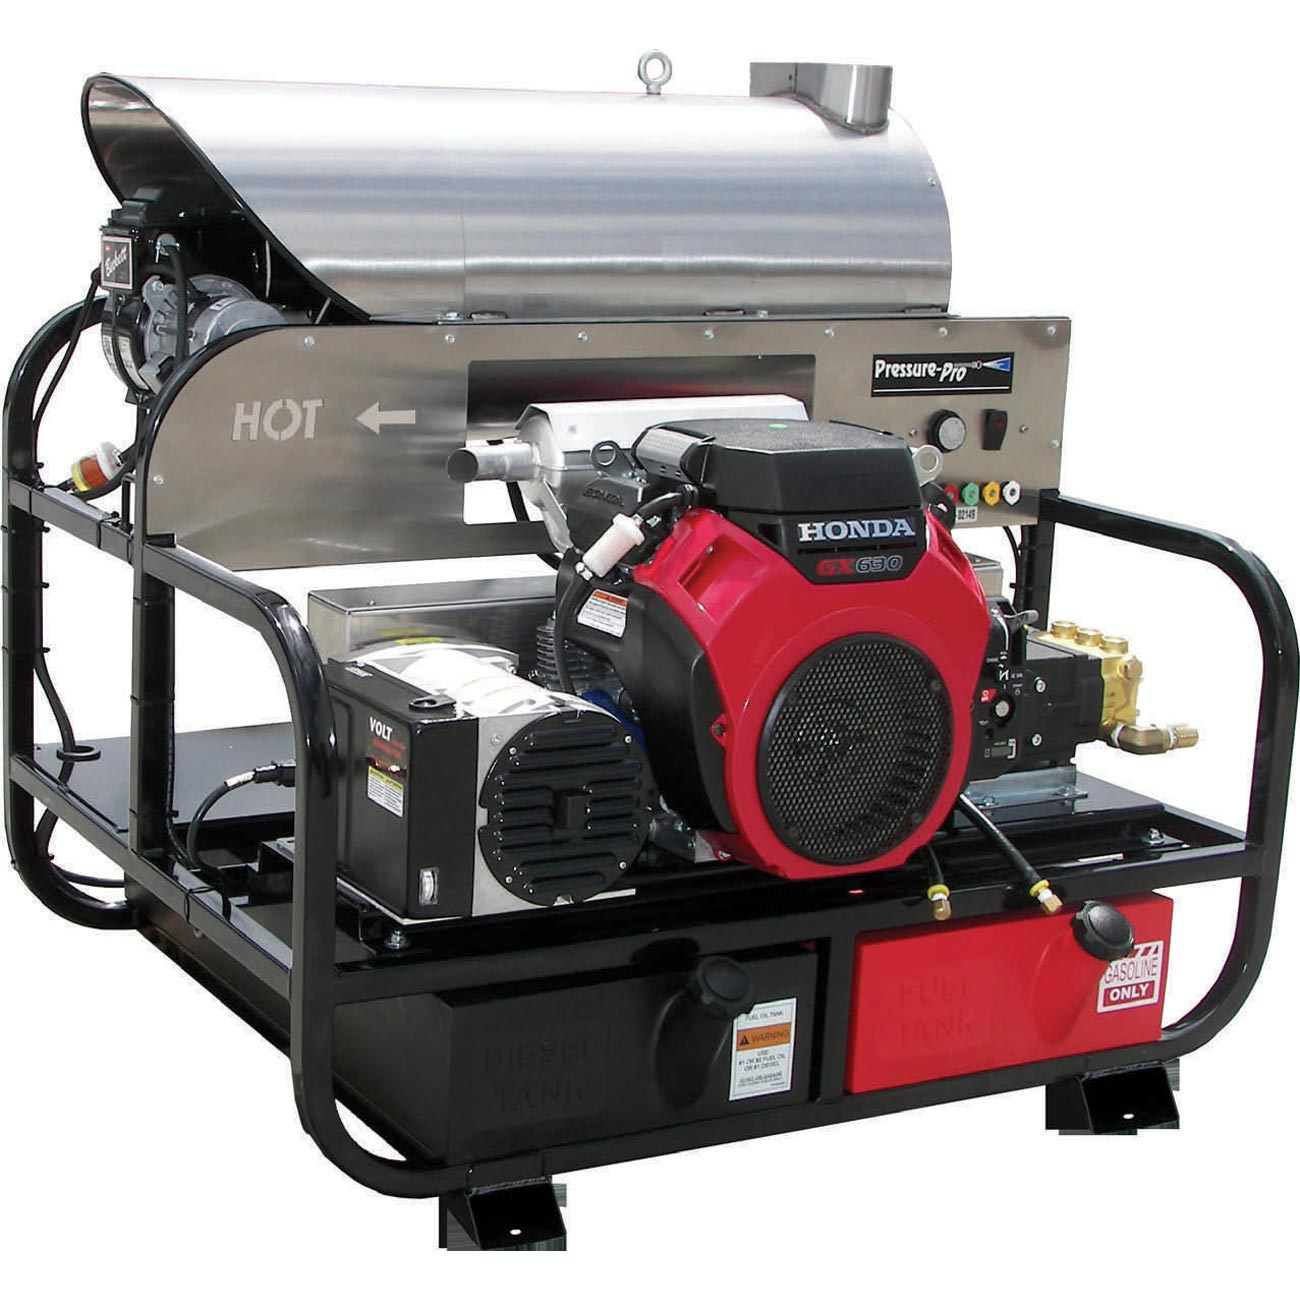 Pressure PRO 6115PRO-20G Super Skid HOT Washer 5.5gpm 3500psi 20Hp Honda Engine General Pump w Generator